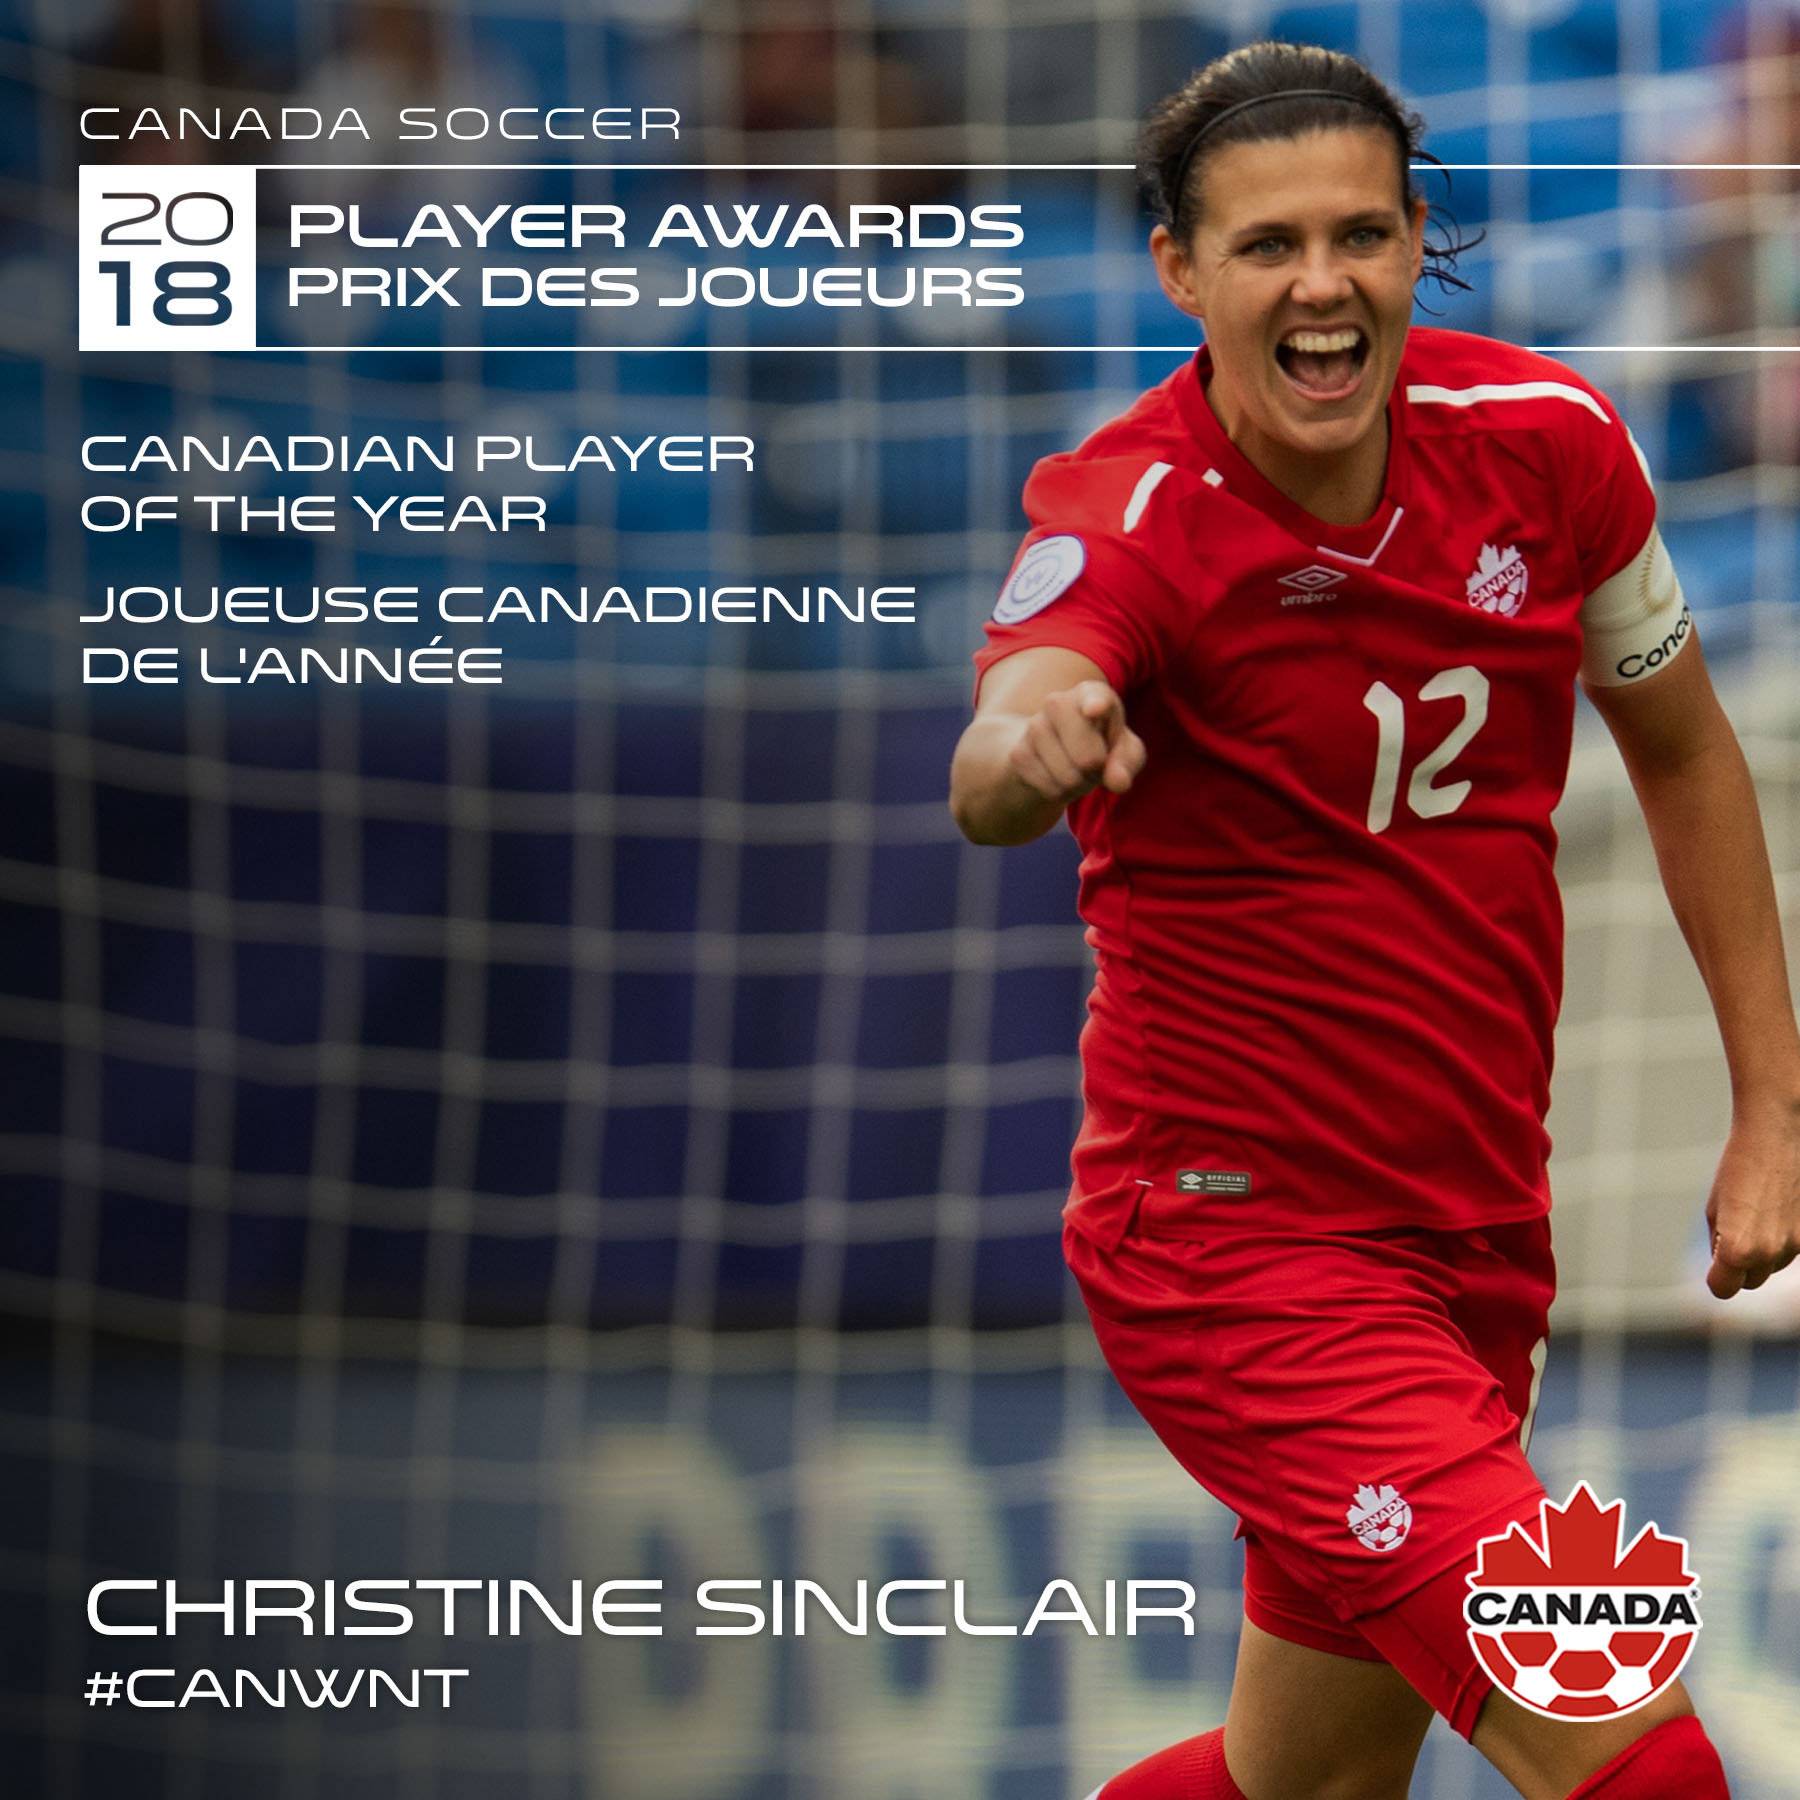 20181211_CANWNT_Sinclair2